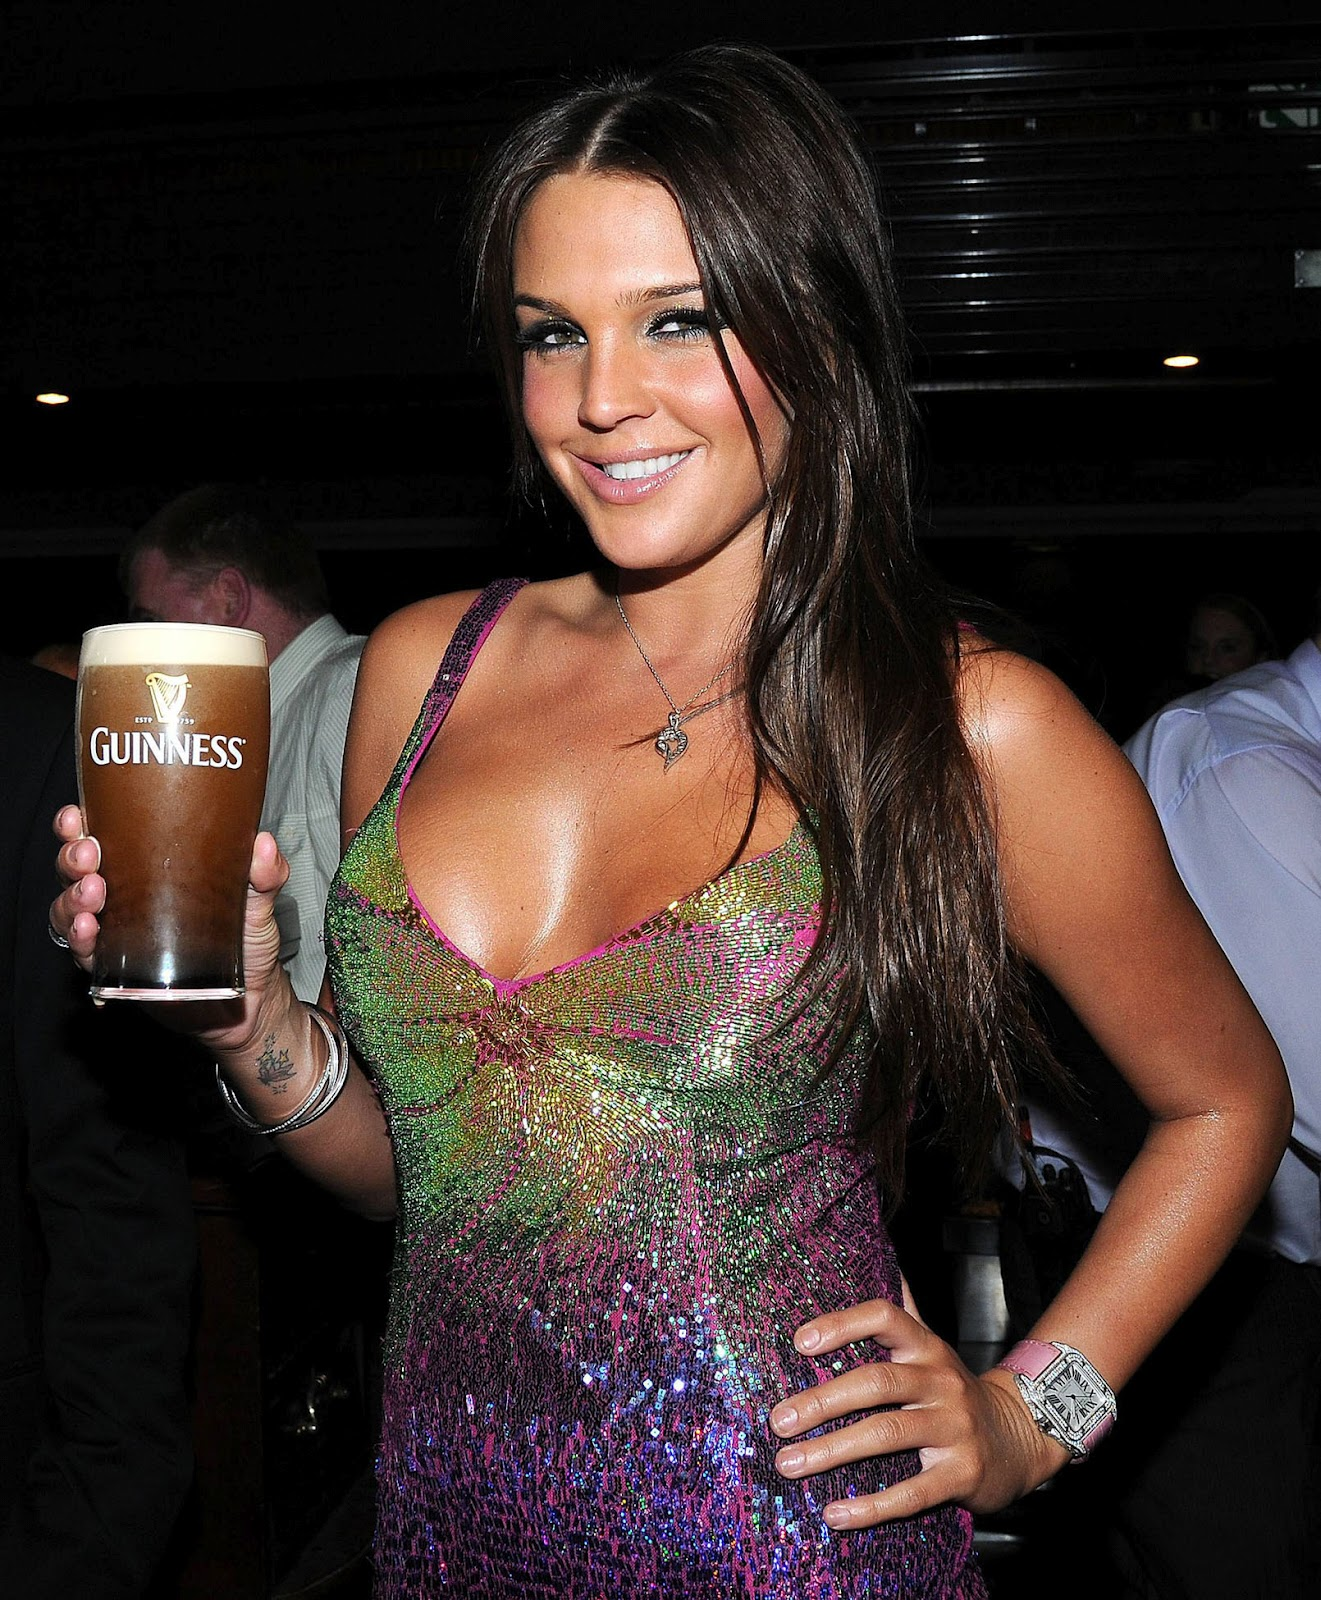 Hollywood All Stars Danielle Lloyd Profile And Pictures